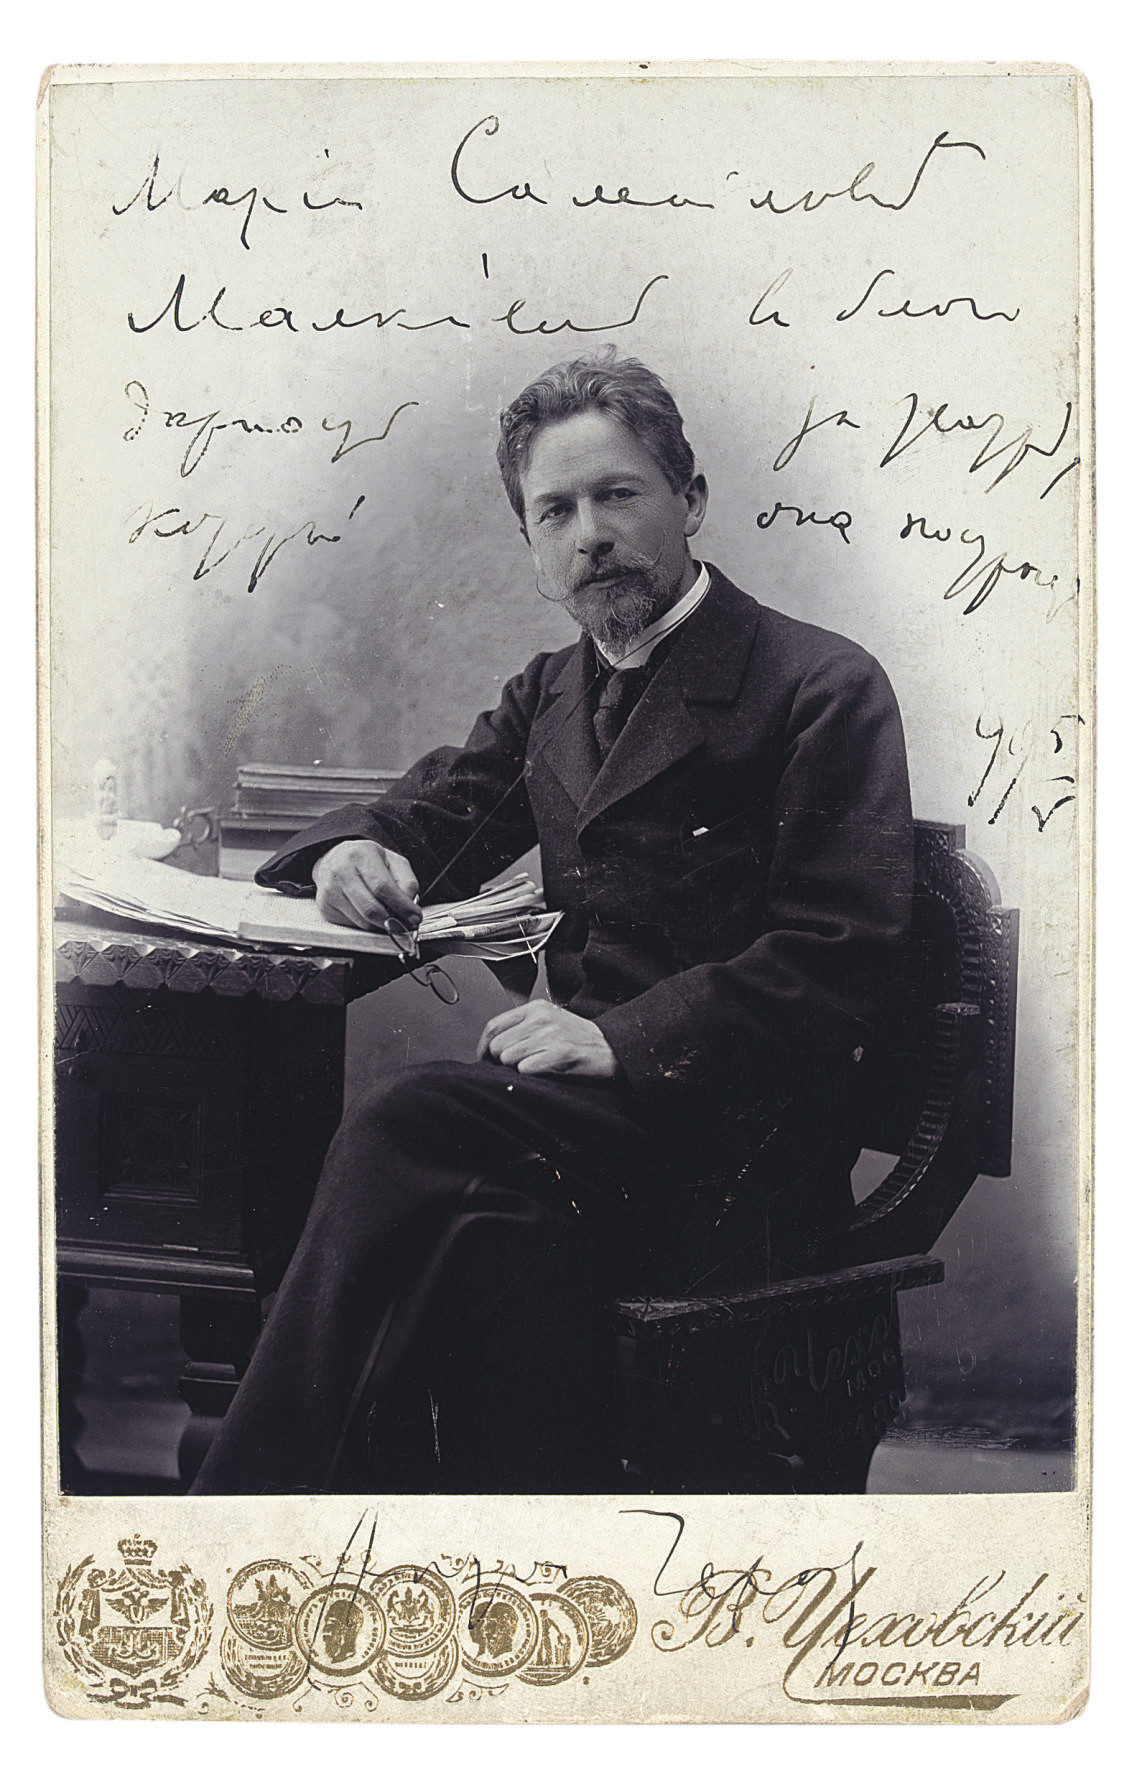 CHEKHOV, Anton Pavlovich (1860-1904) -- A photographic portrait of Chekhov, inscribed by the author to Mariia Samoilovna Malkiel, on the image and signed in the mount, 5 May 1889.